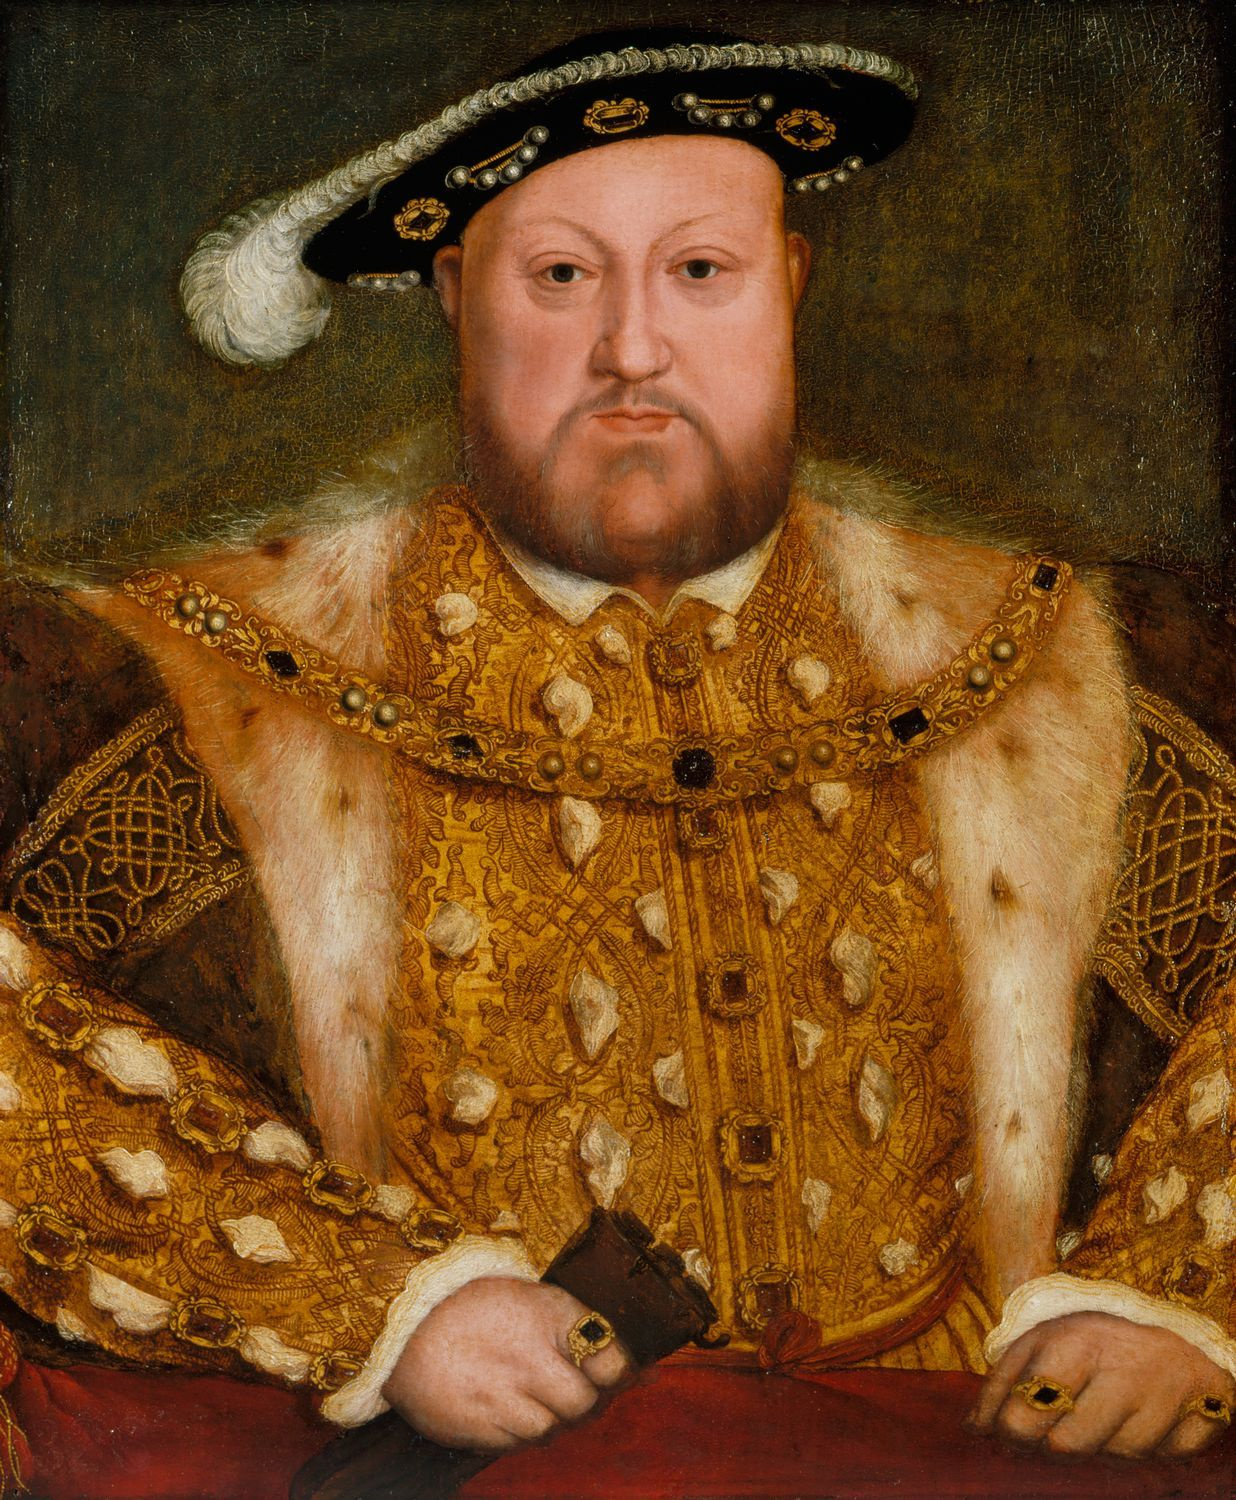 Portrait of Henry VIII. c.1560-80. After Hans Holbein the Younger